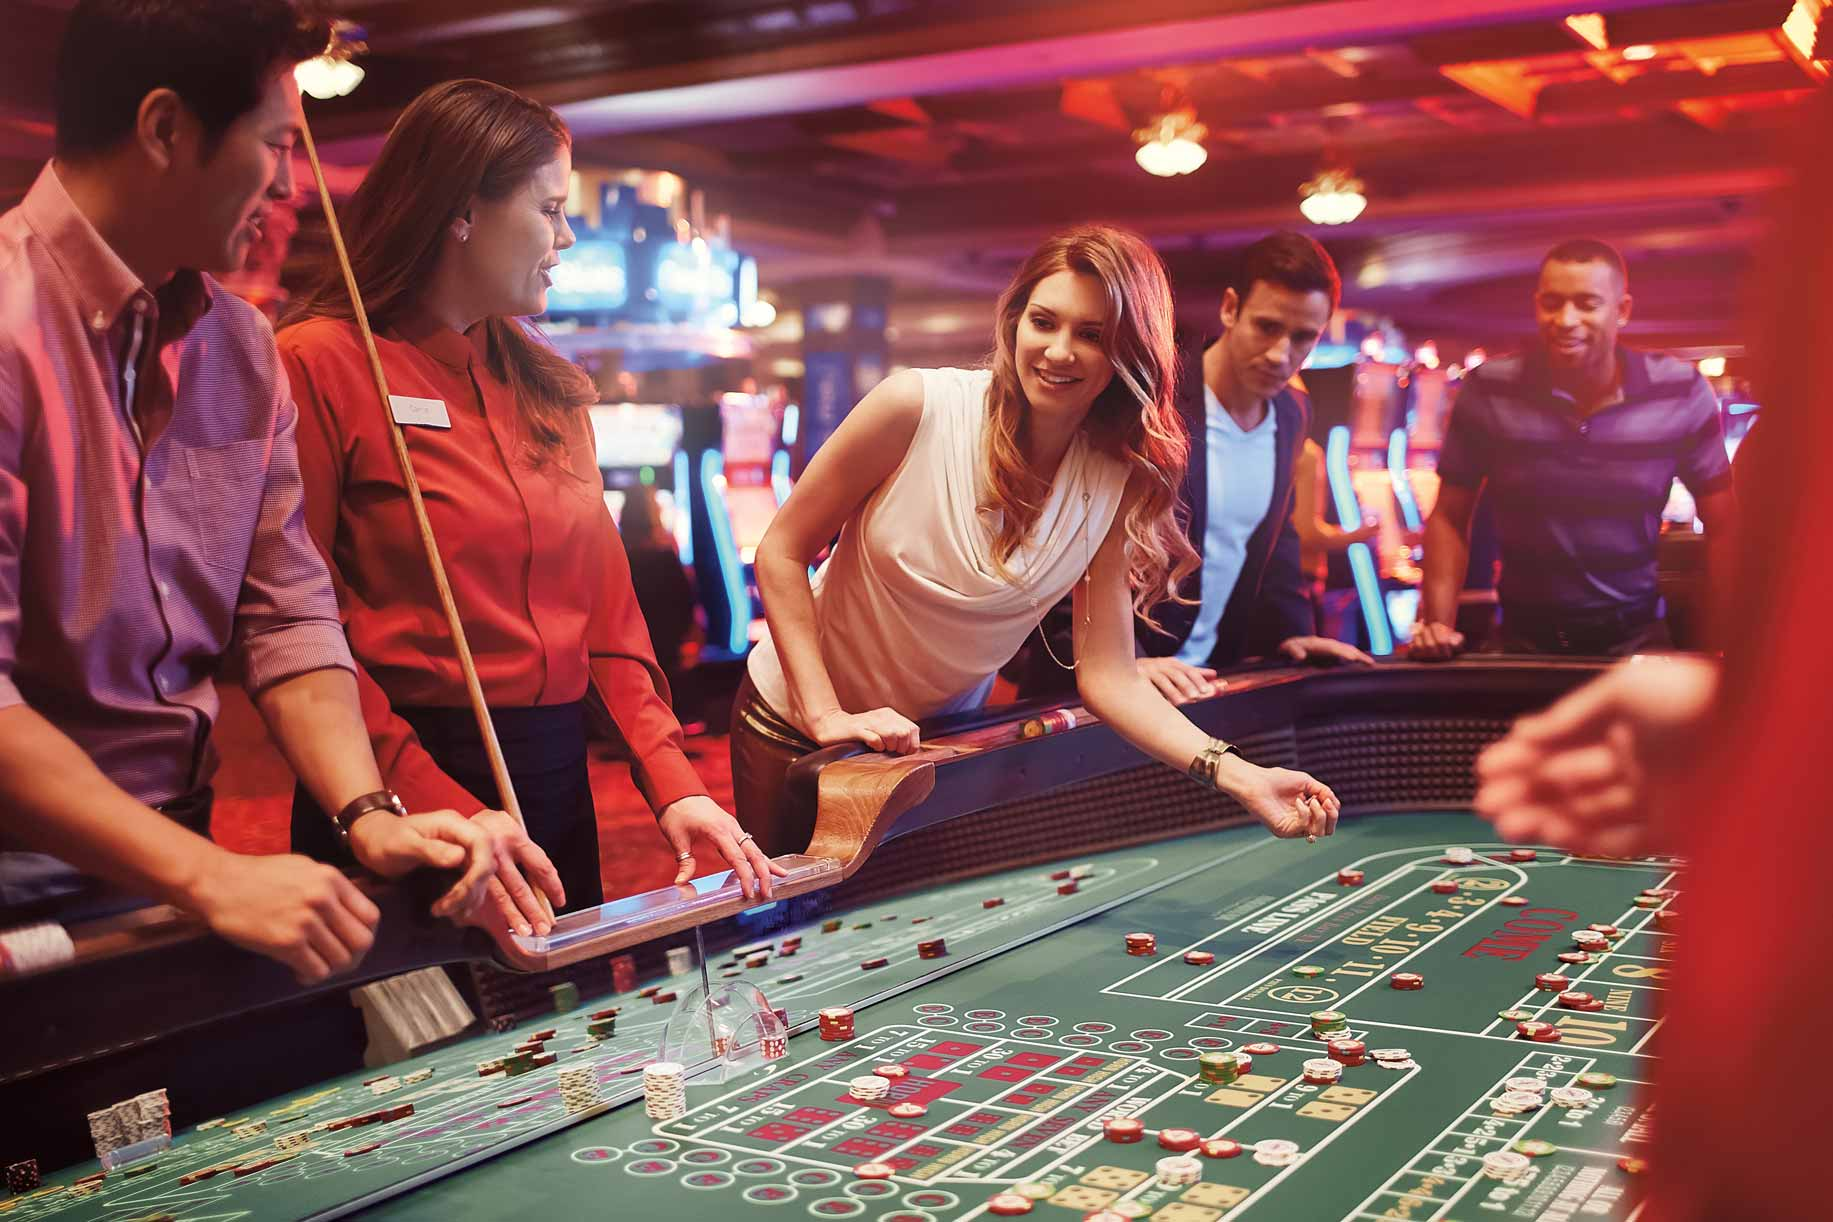 Top 3 Tips For Saving Money On Online Casino Games